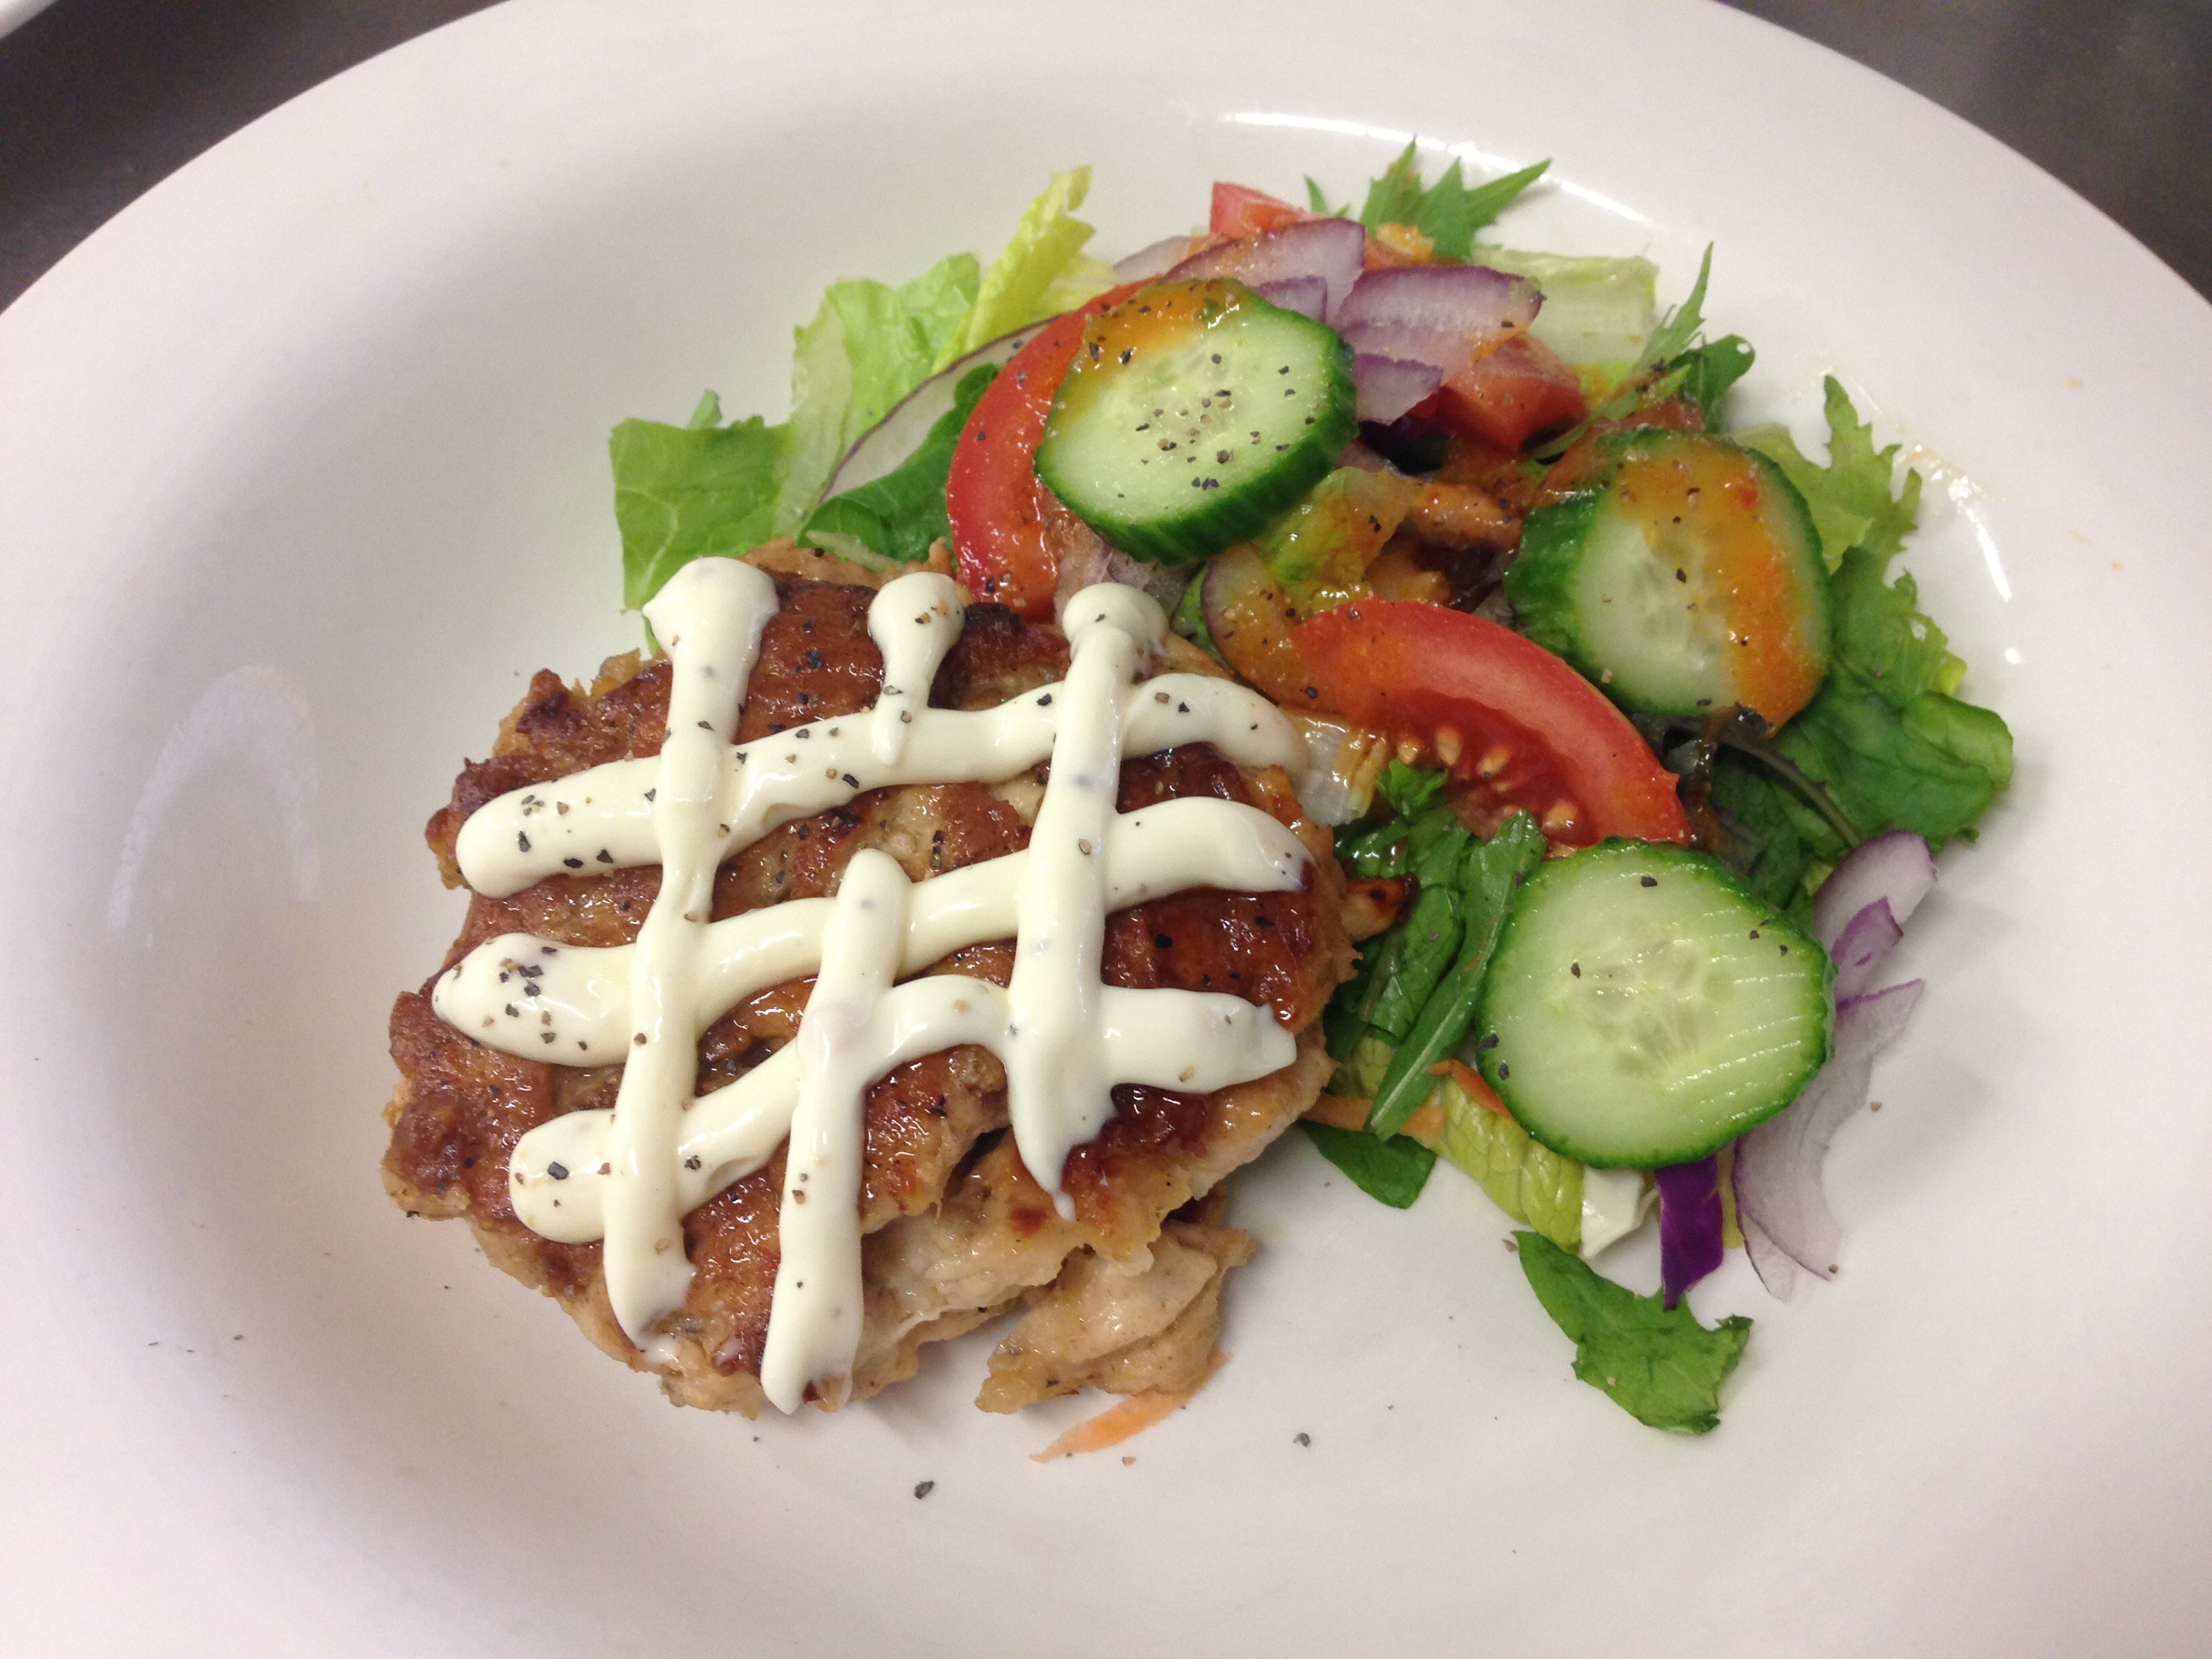 Chicken burger and garden salad